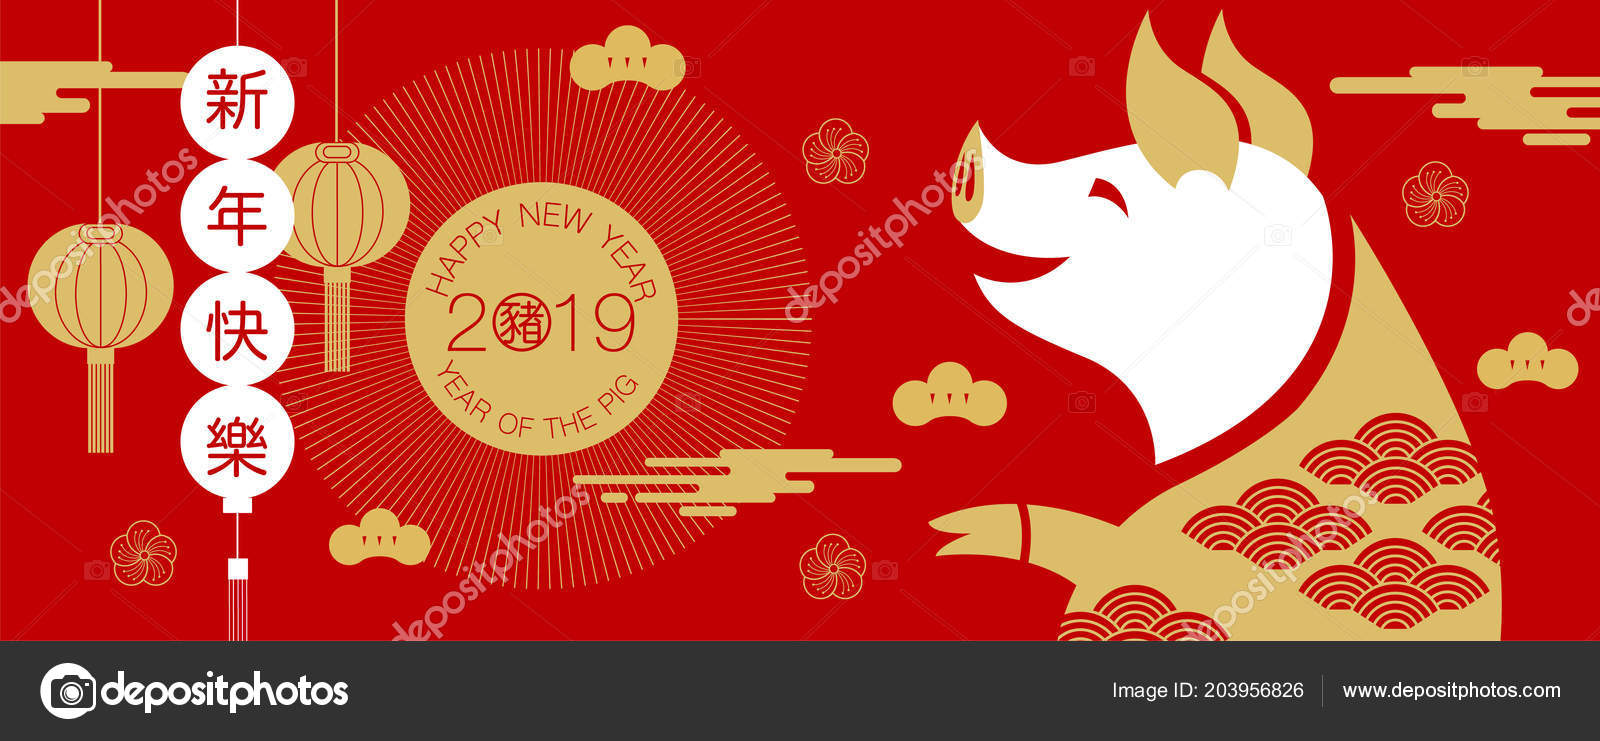 happy new year 2019 chinese new year greetings year pig stock vector